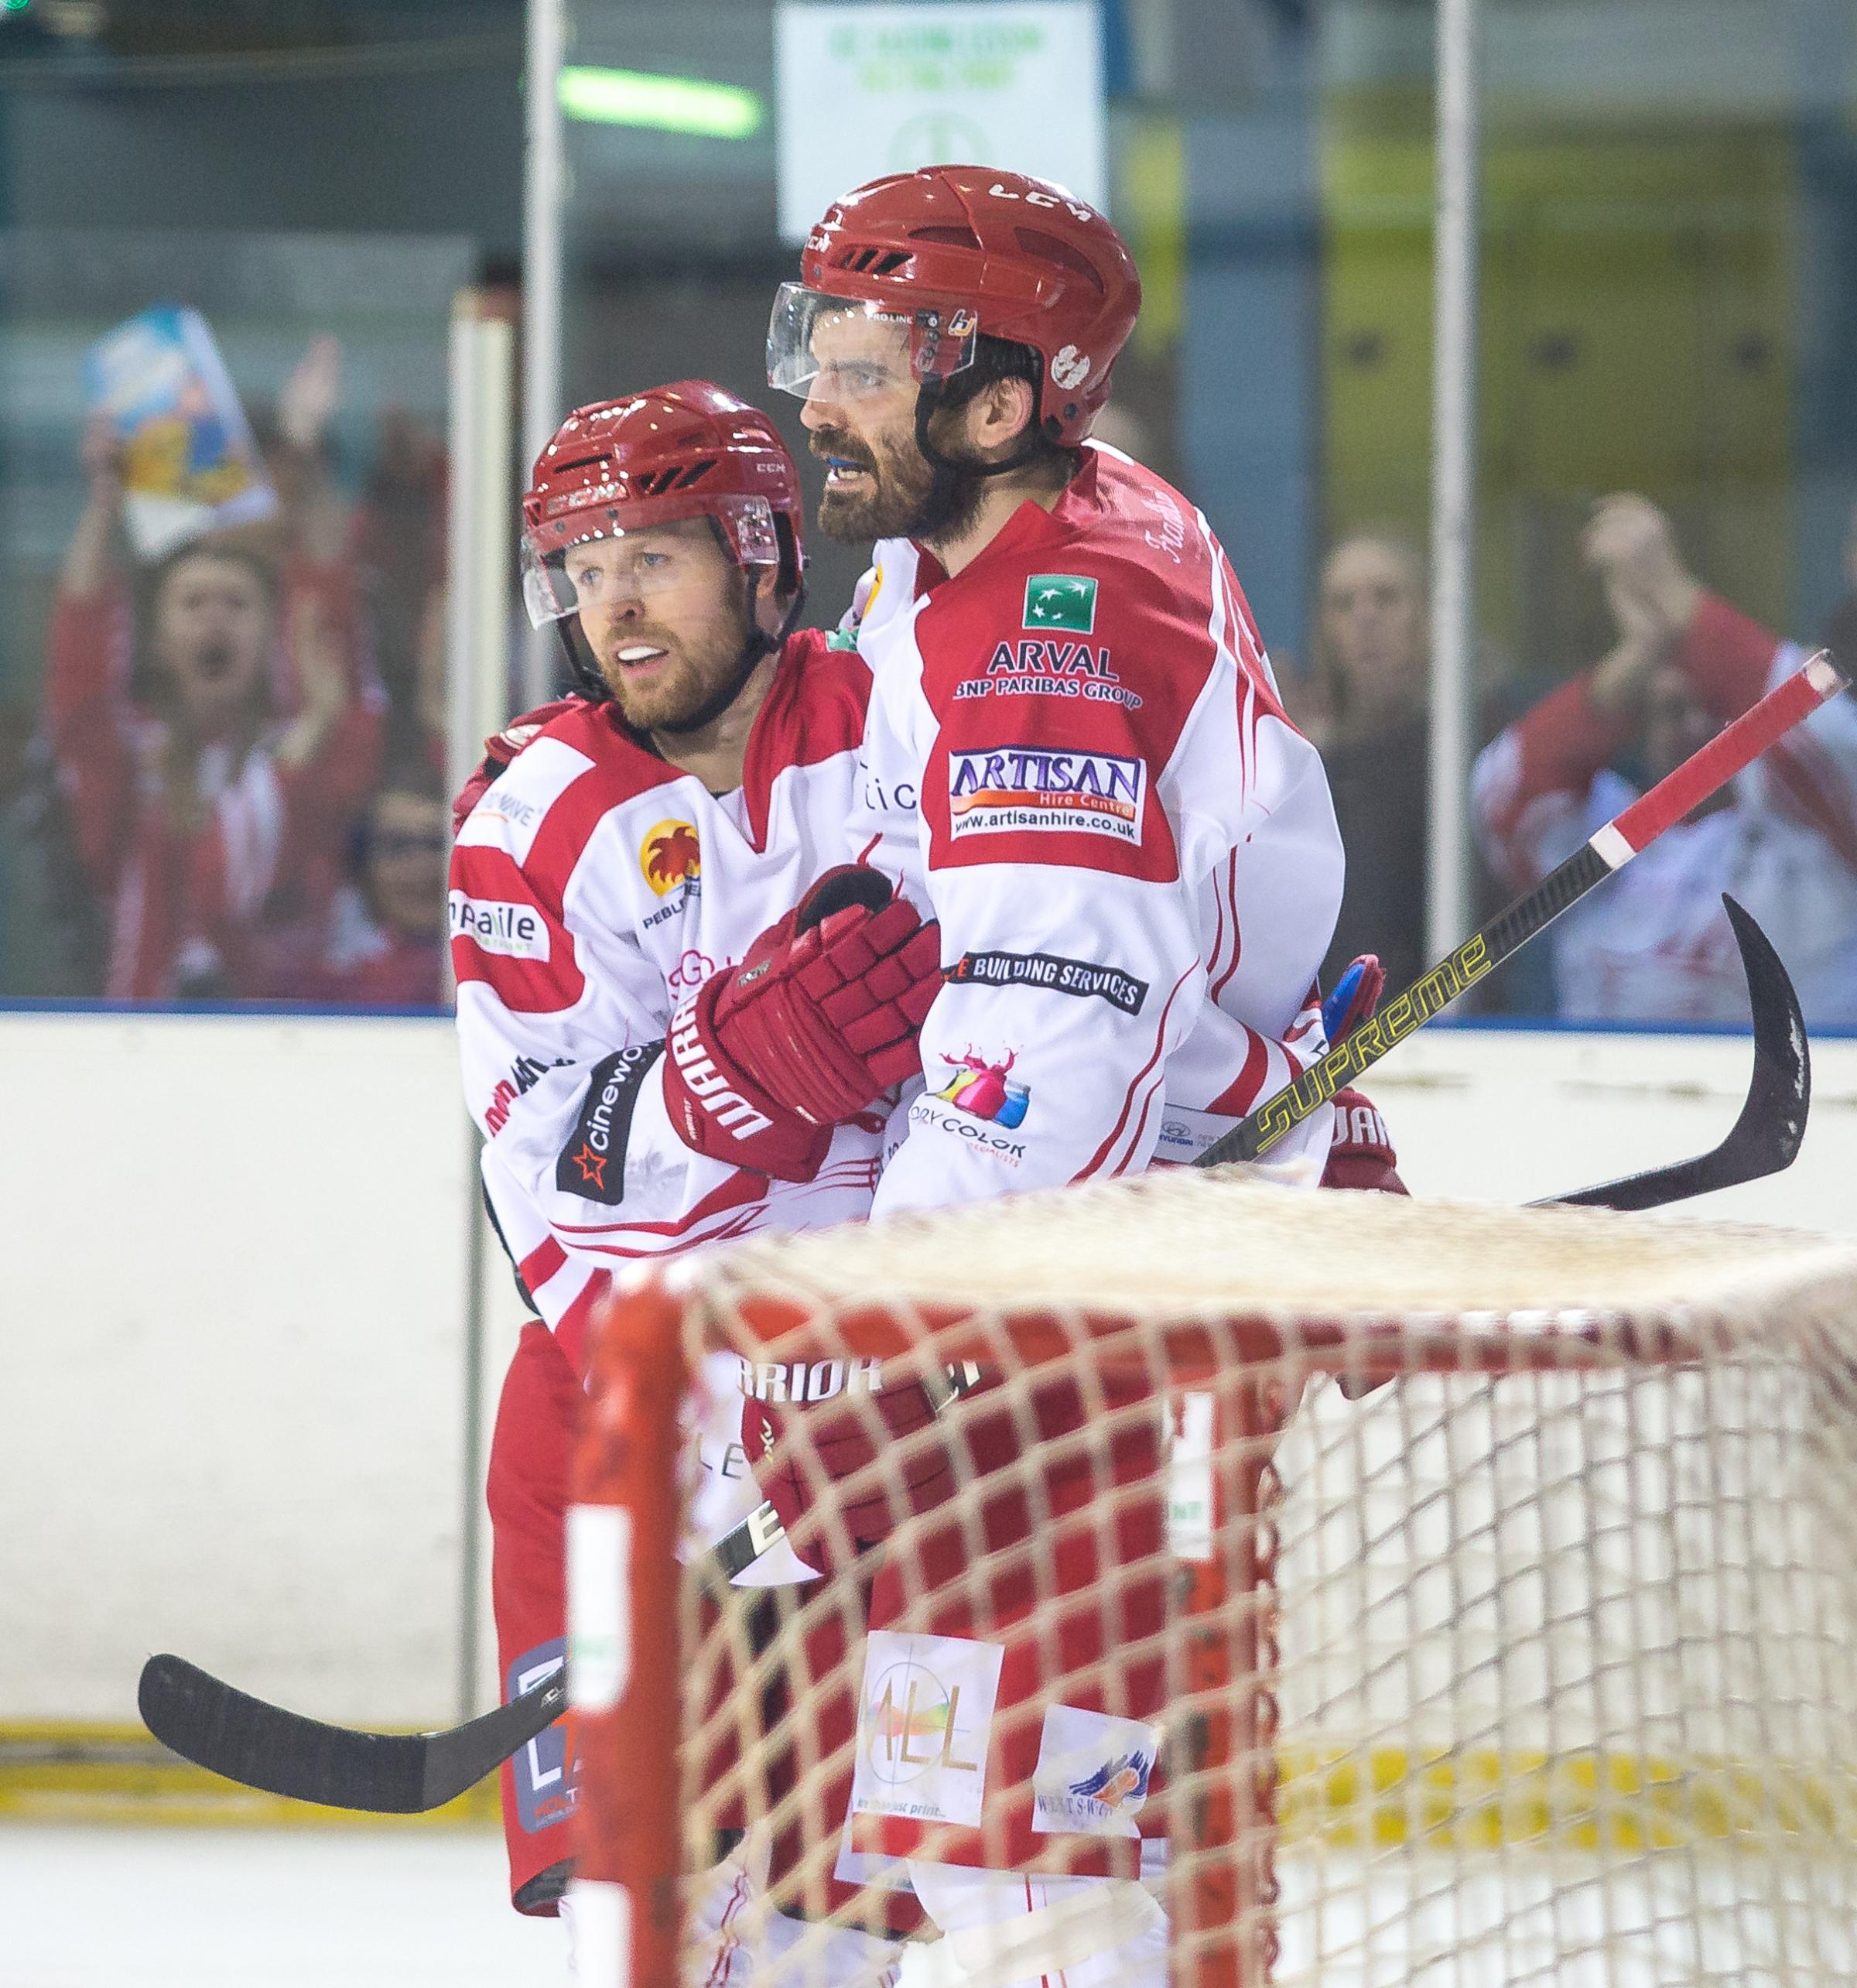 Swindon Wildcats Vs Peterborough, Aaron Nell and celes with jonas Hoog.